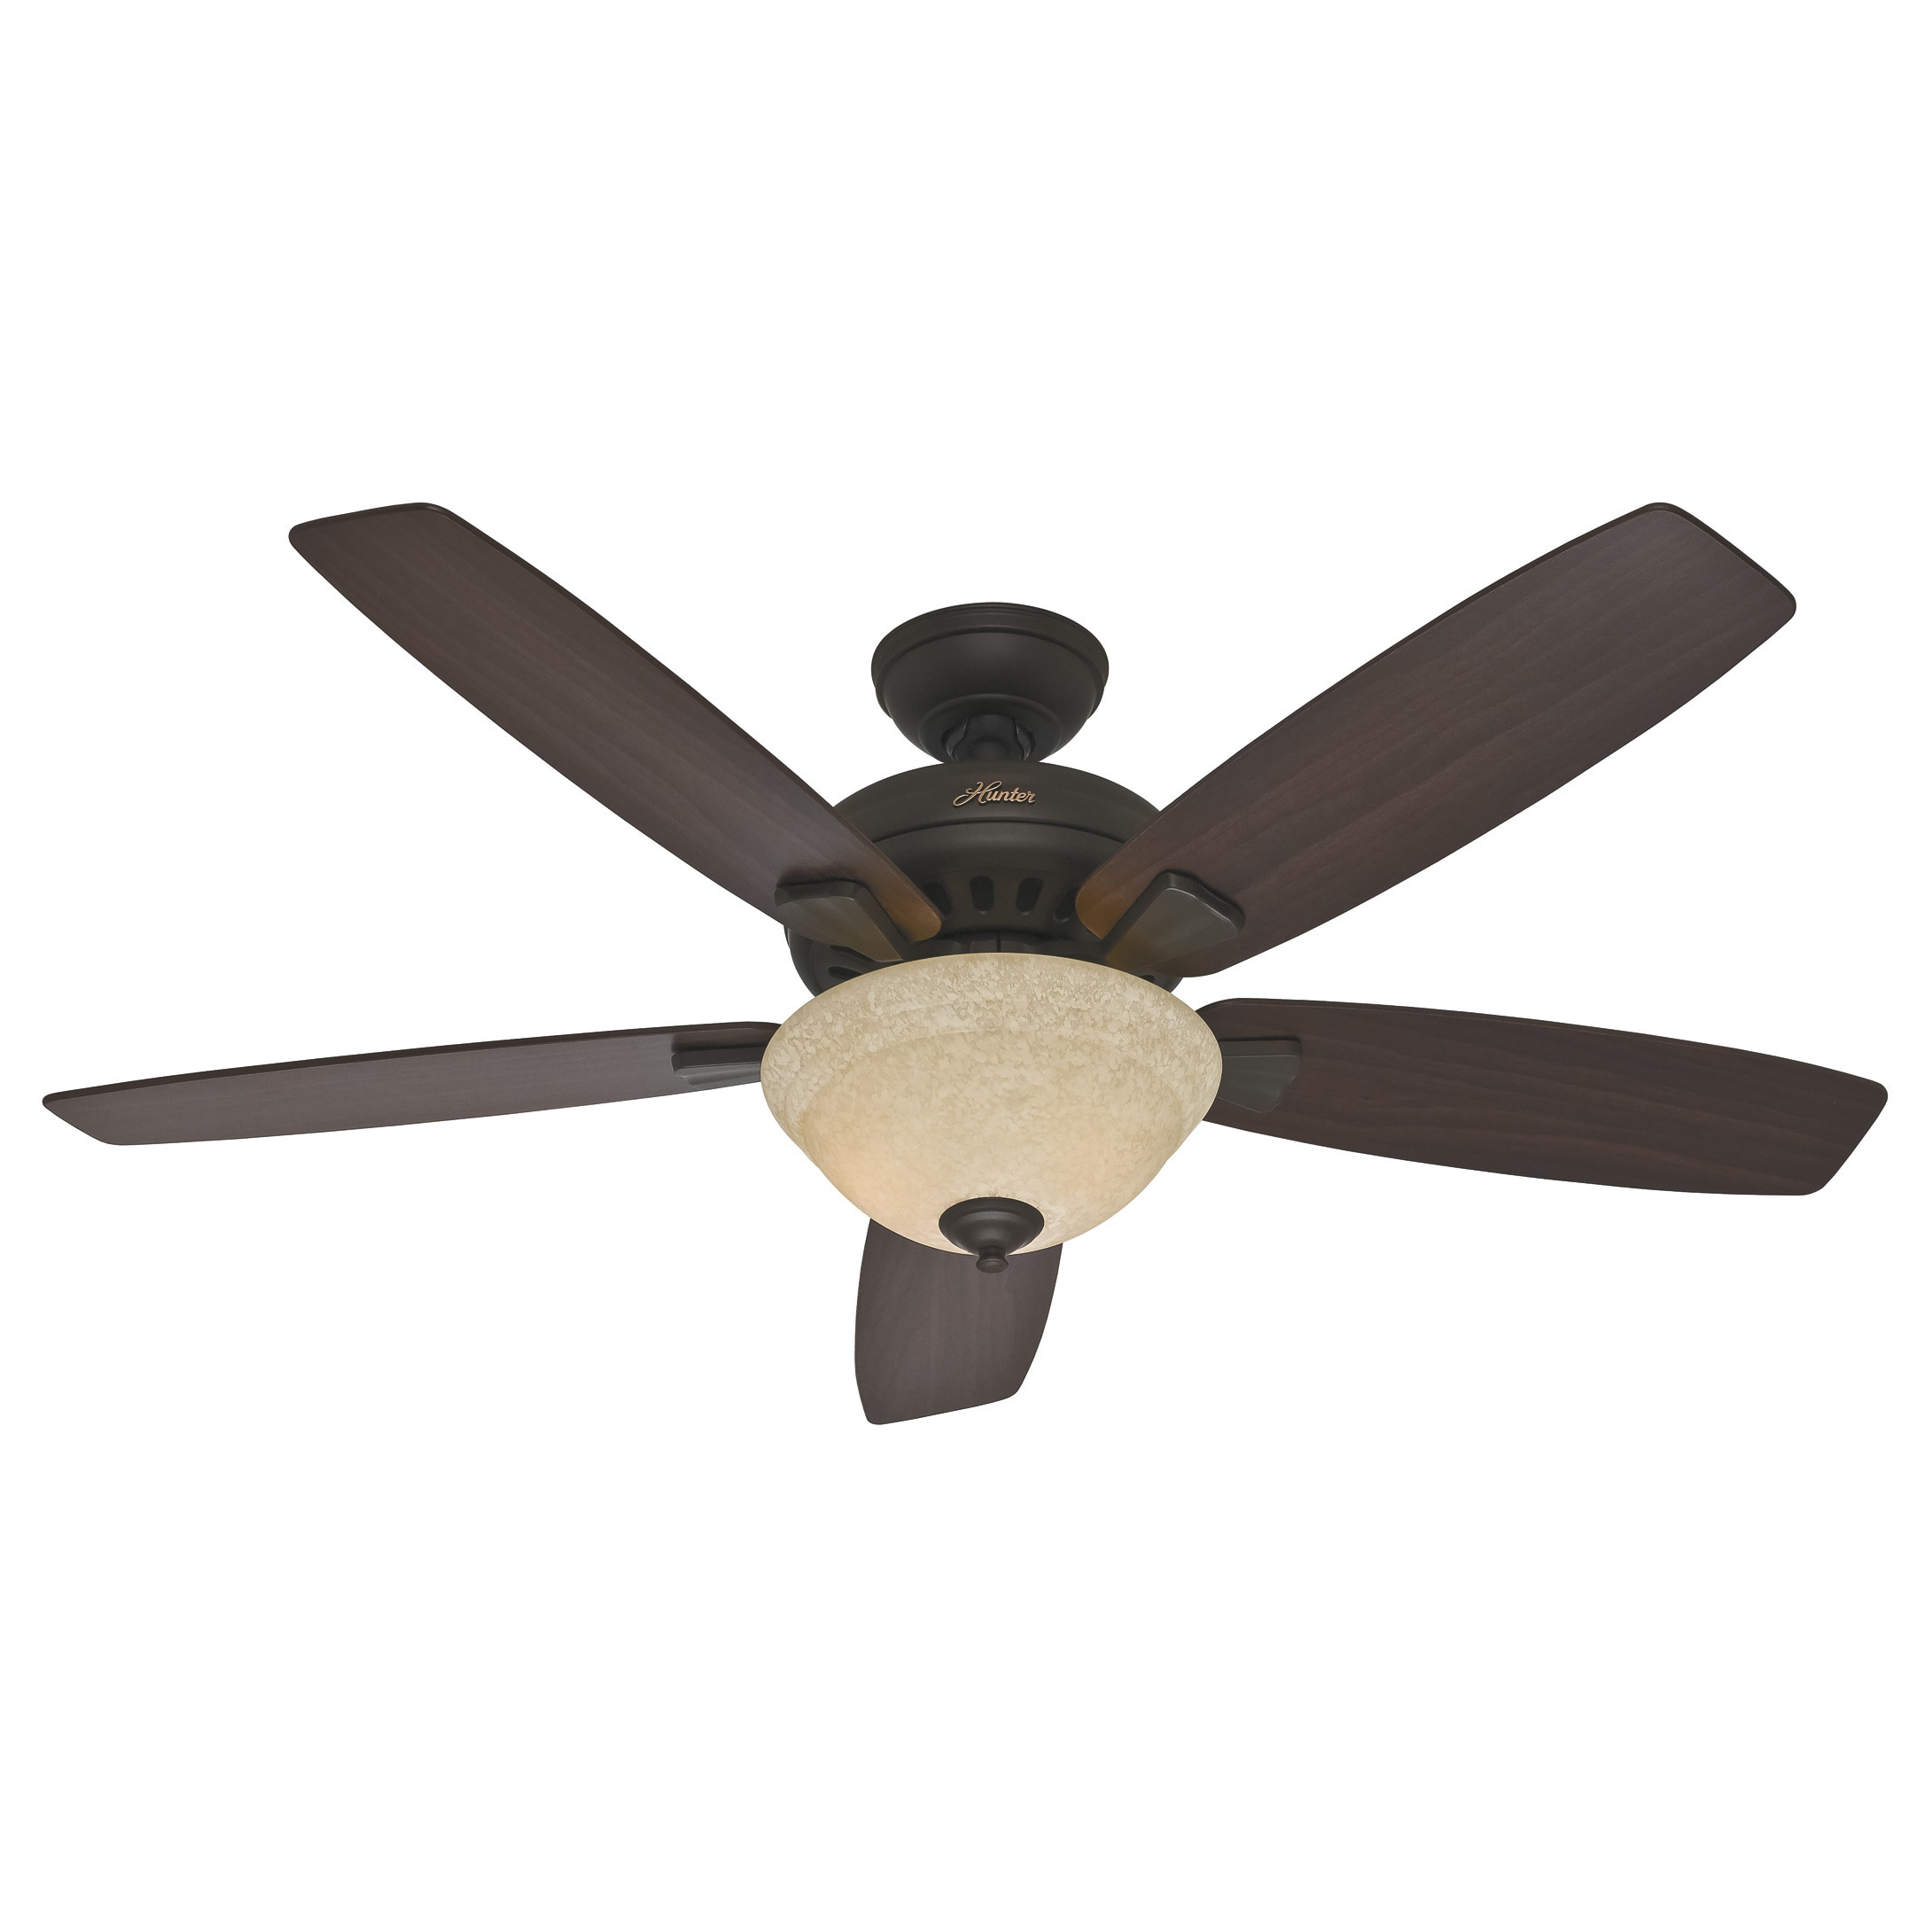 Shop hunter banyan 52 inch ceiling fan free shipping today shop hunter banyan 52 inch ceiling fan free shipping today overstock 8948508 aloadofball Images